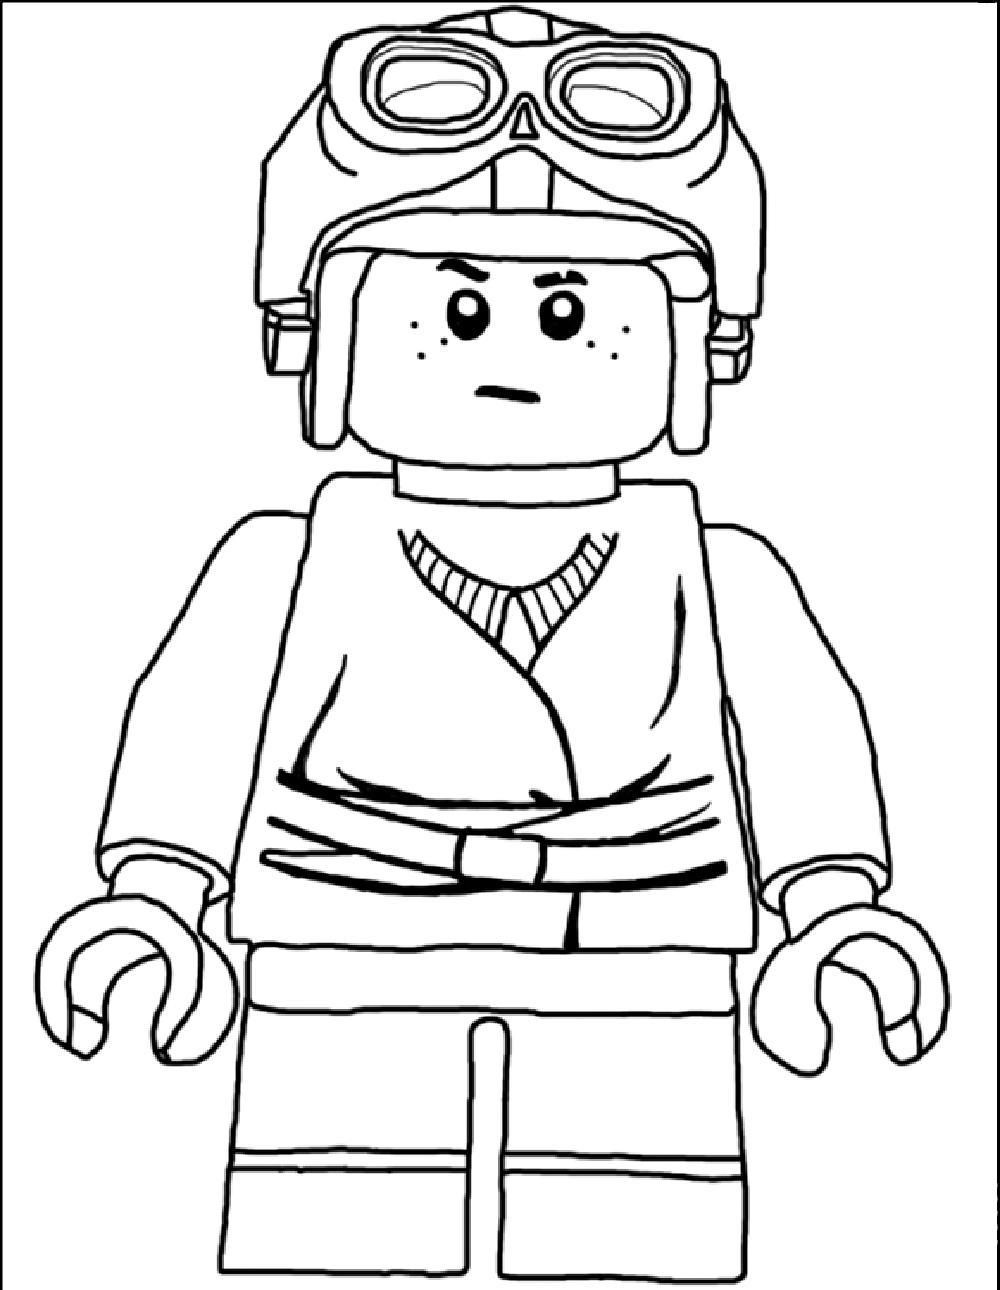 Lego luke skywalker coloring coloring pages for Lego luke skywalker coloring pages